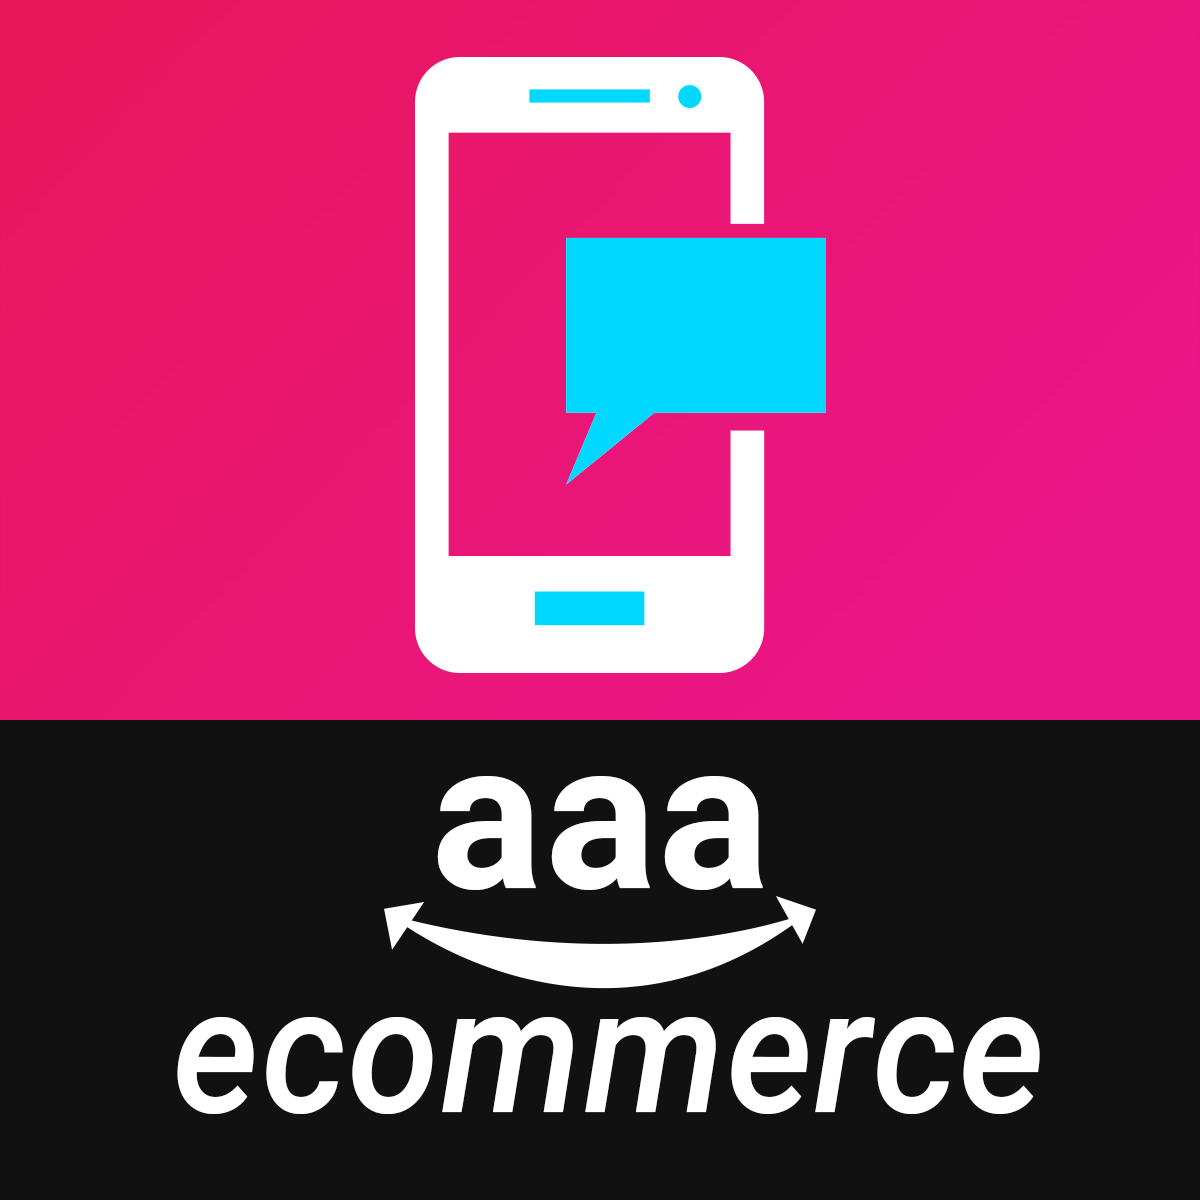 Shopify Testimonials app by Aaaecommerce inc